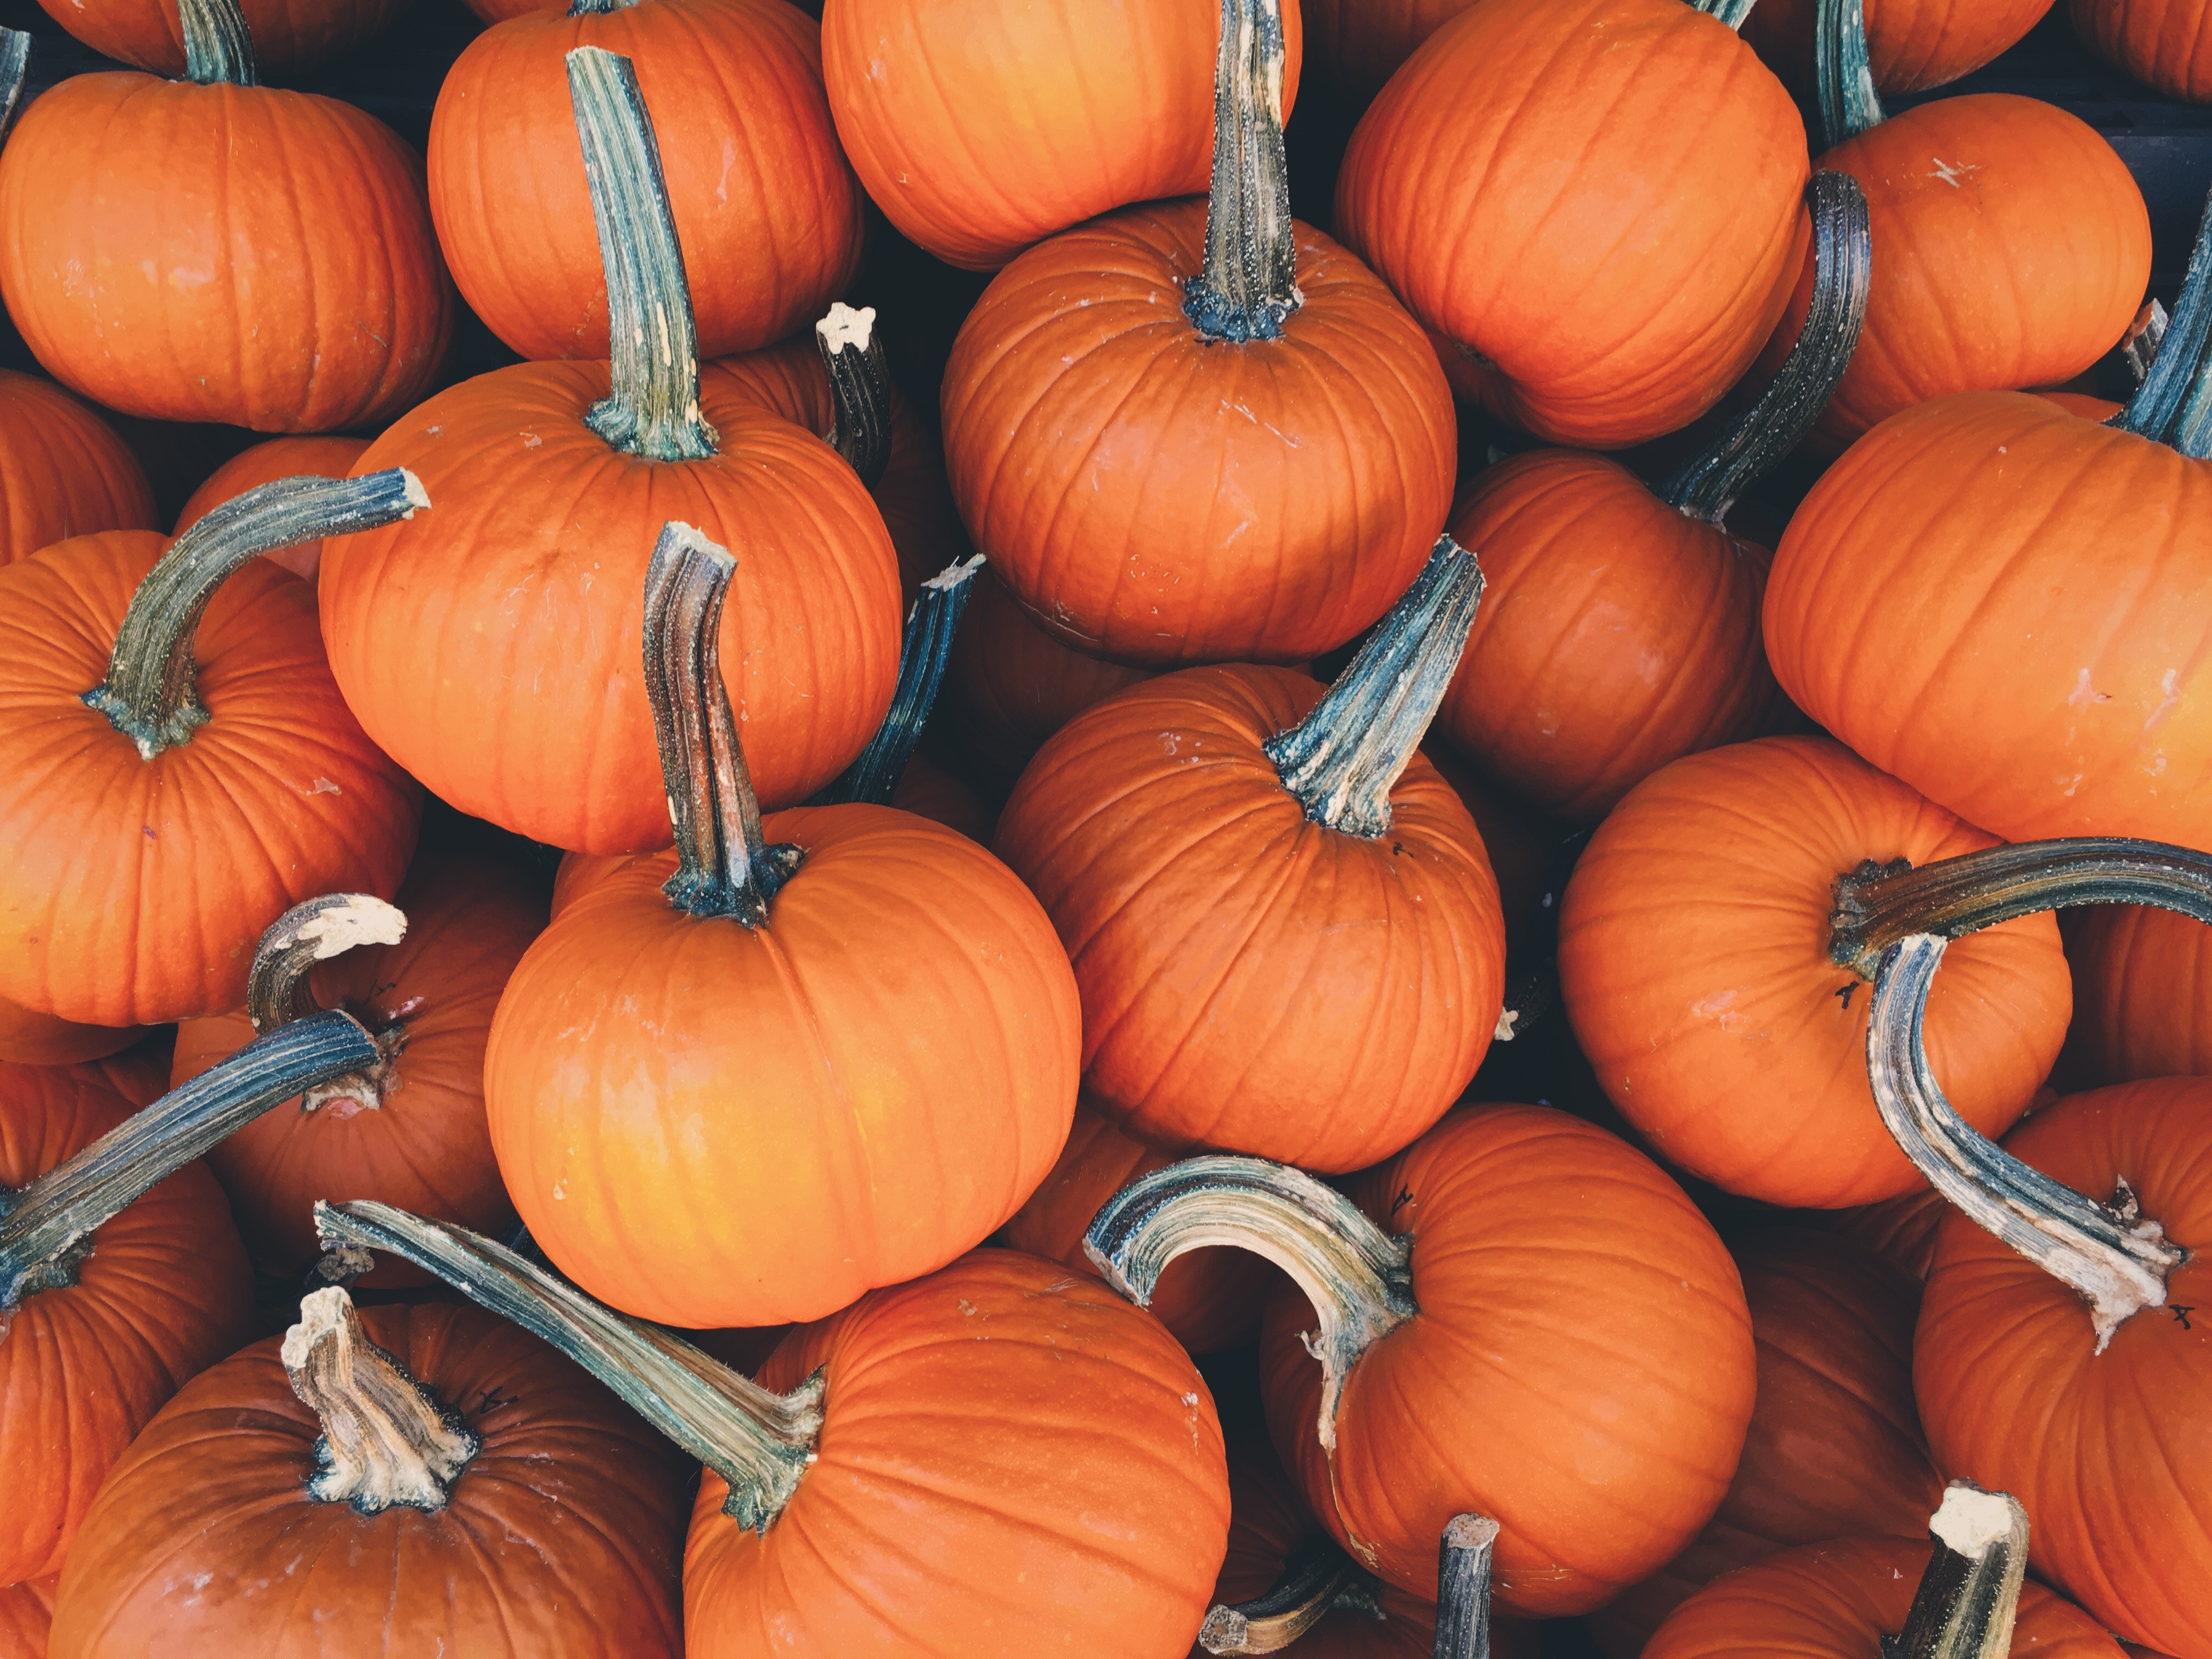 7 Pumpkin Recipes to Cook Up This Fall